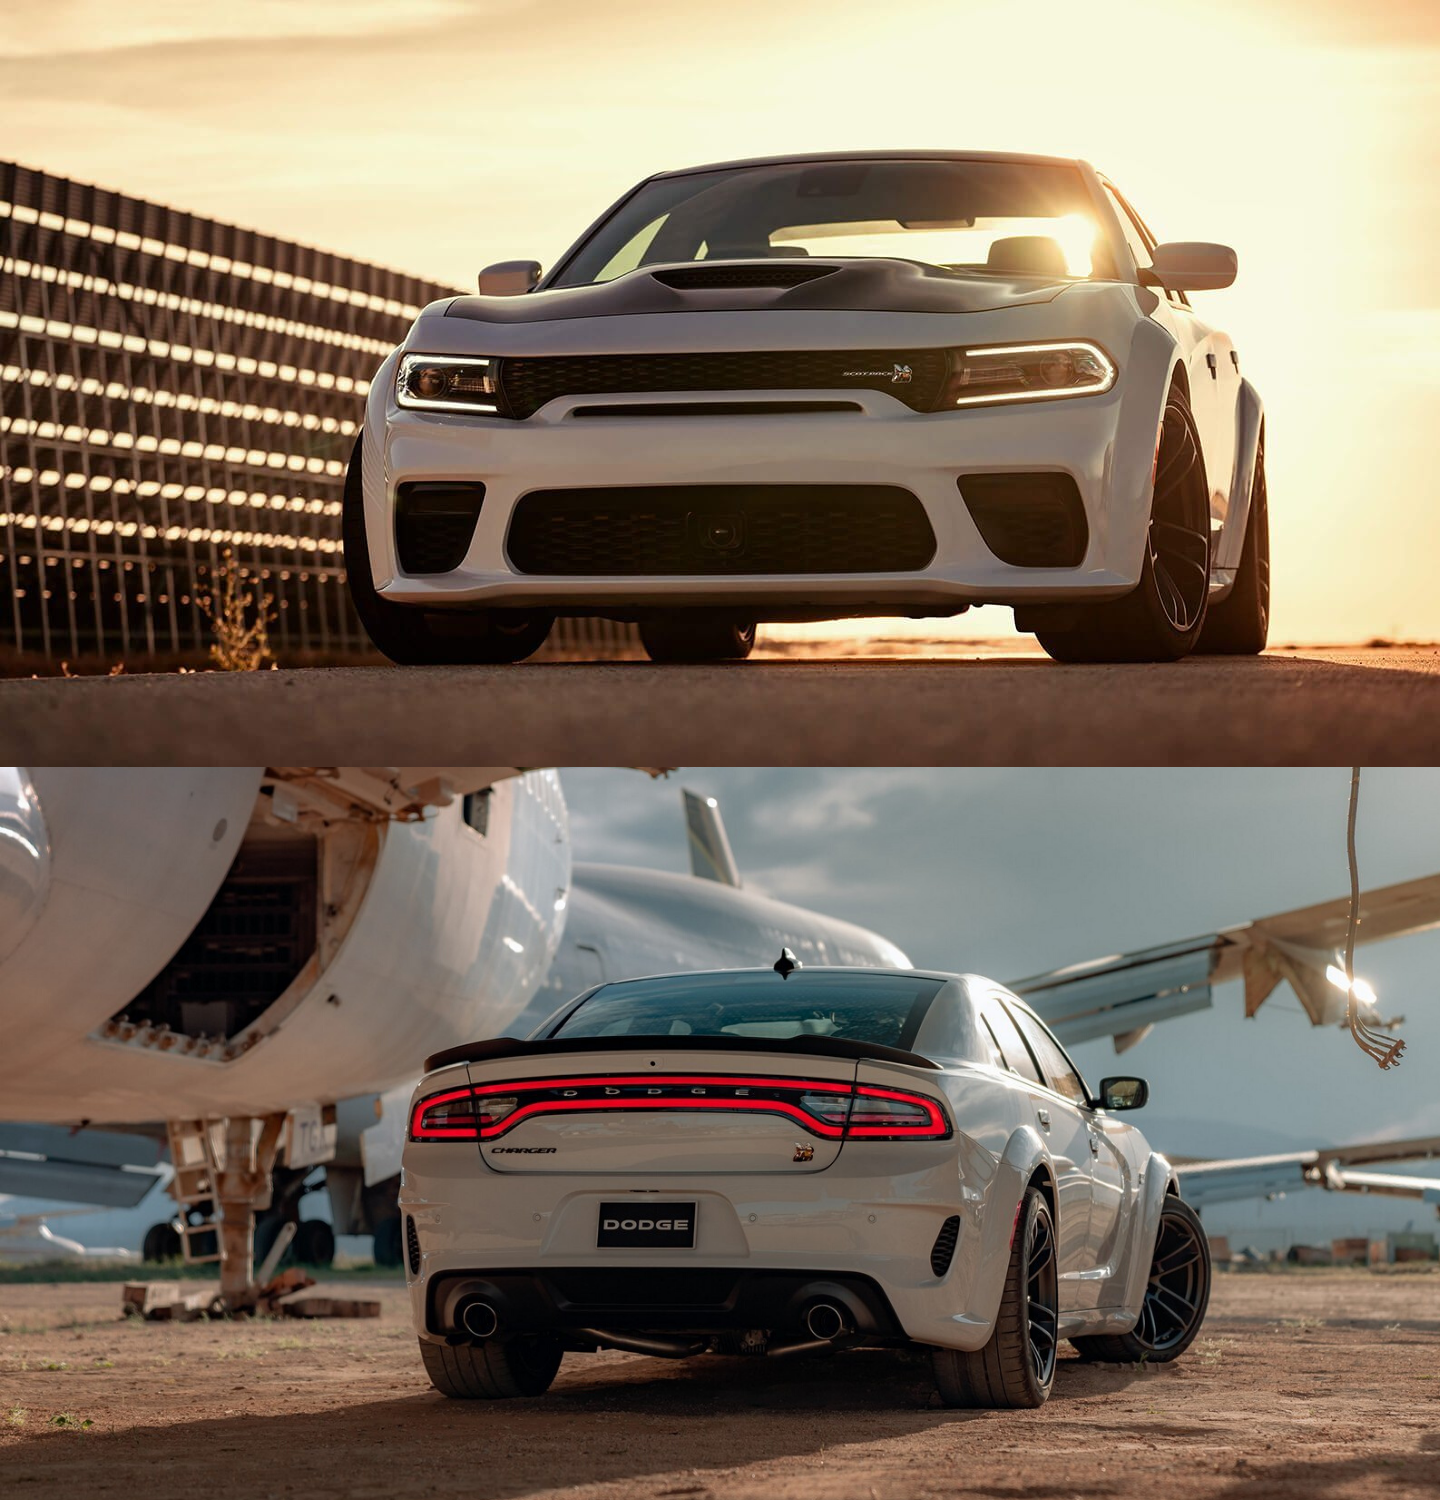 2020 Dodge Charger Srt In 2020 Charger Srt Dodge Charger Srt Dodge Charger